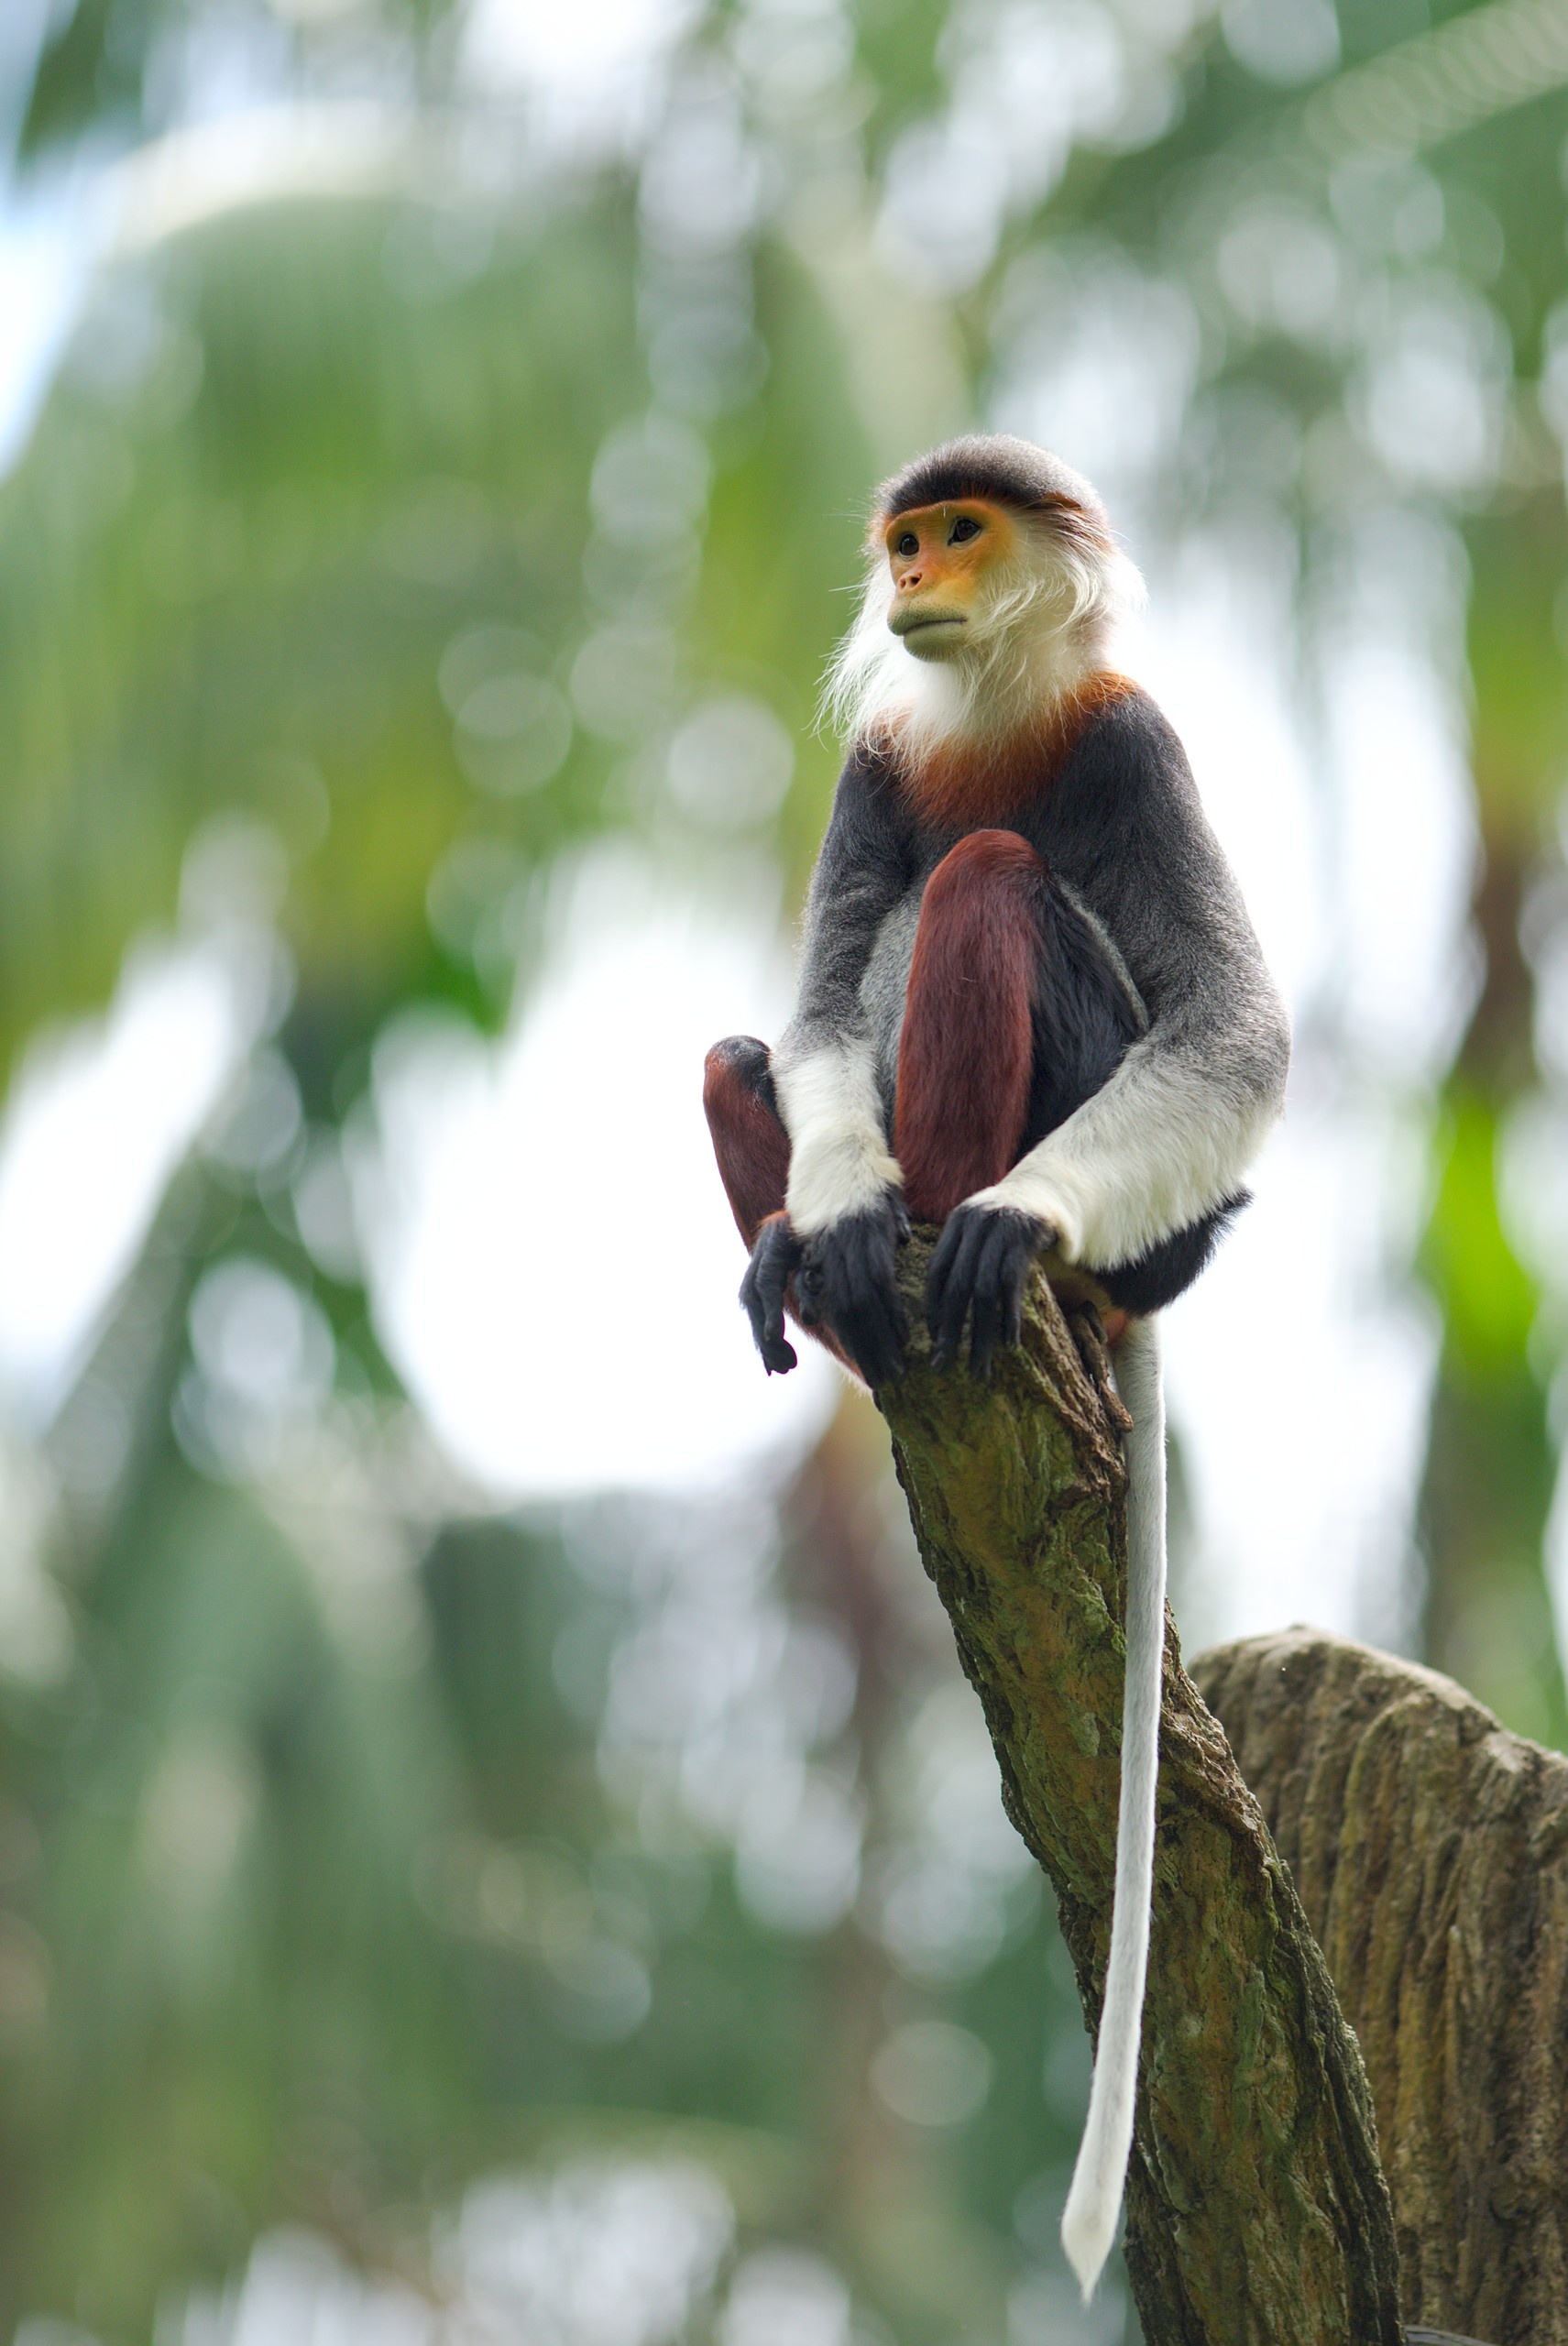 122659 download wallpaper Animals, Toque, Macaque, Monkey, Animal, Wood, Tree, Tail screensavers and pictures for free